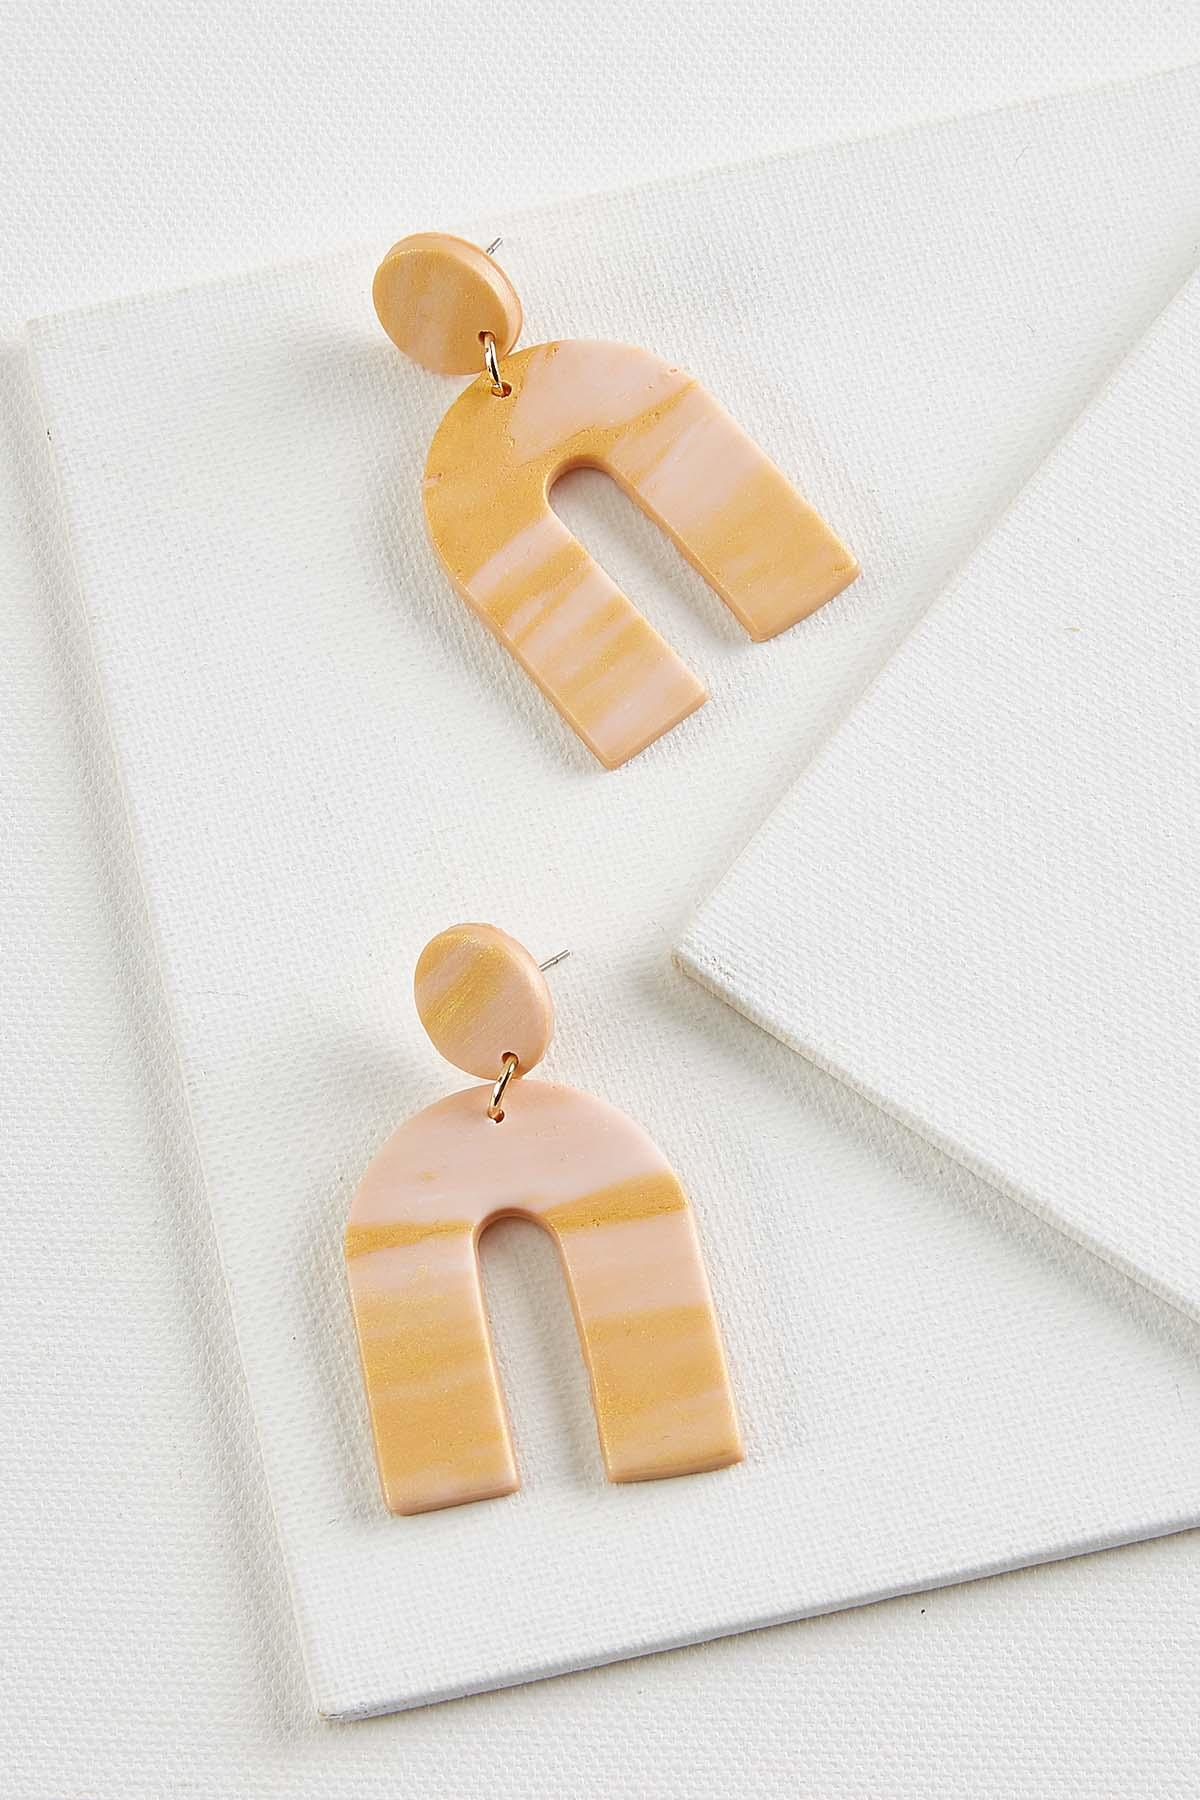 Charming Clay Earrings